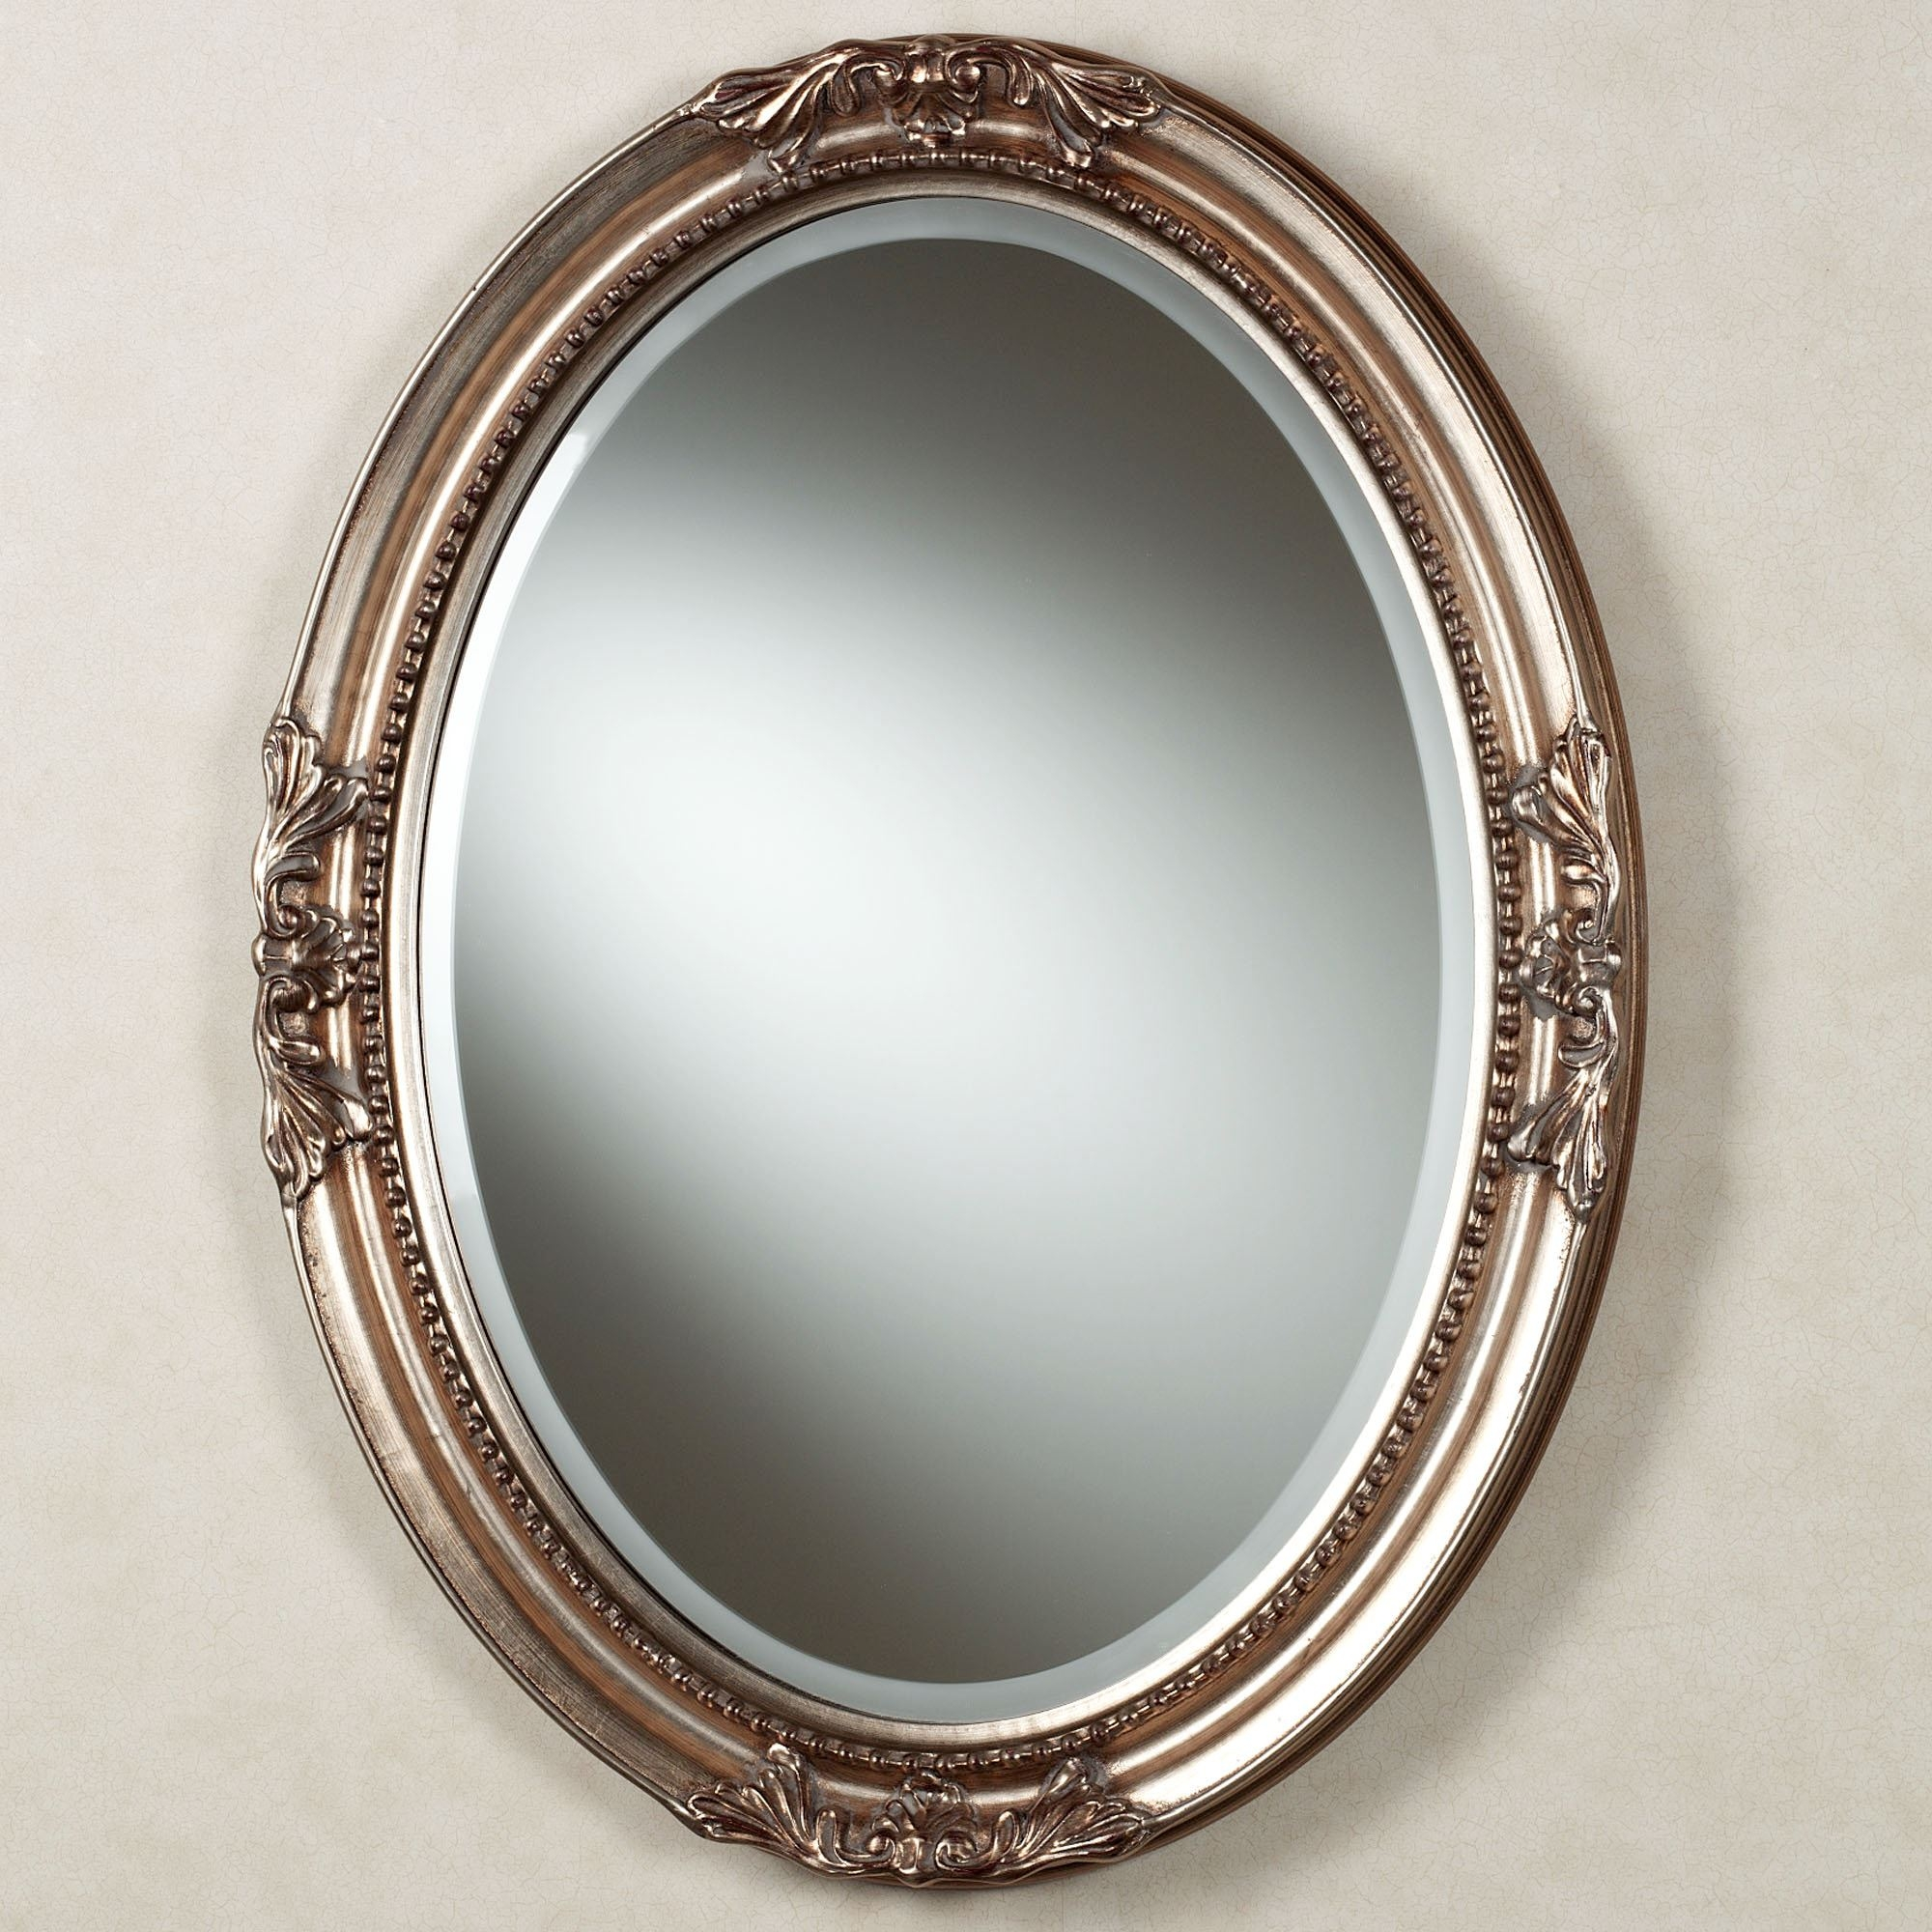 Andina Oval Wall Mirror Regarding Oval Wall Mirrors (Image 1 of 15)